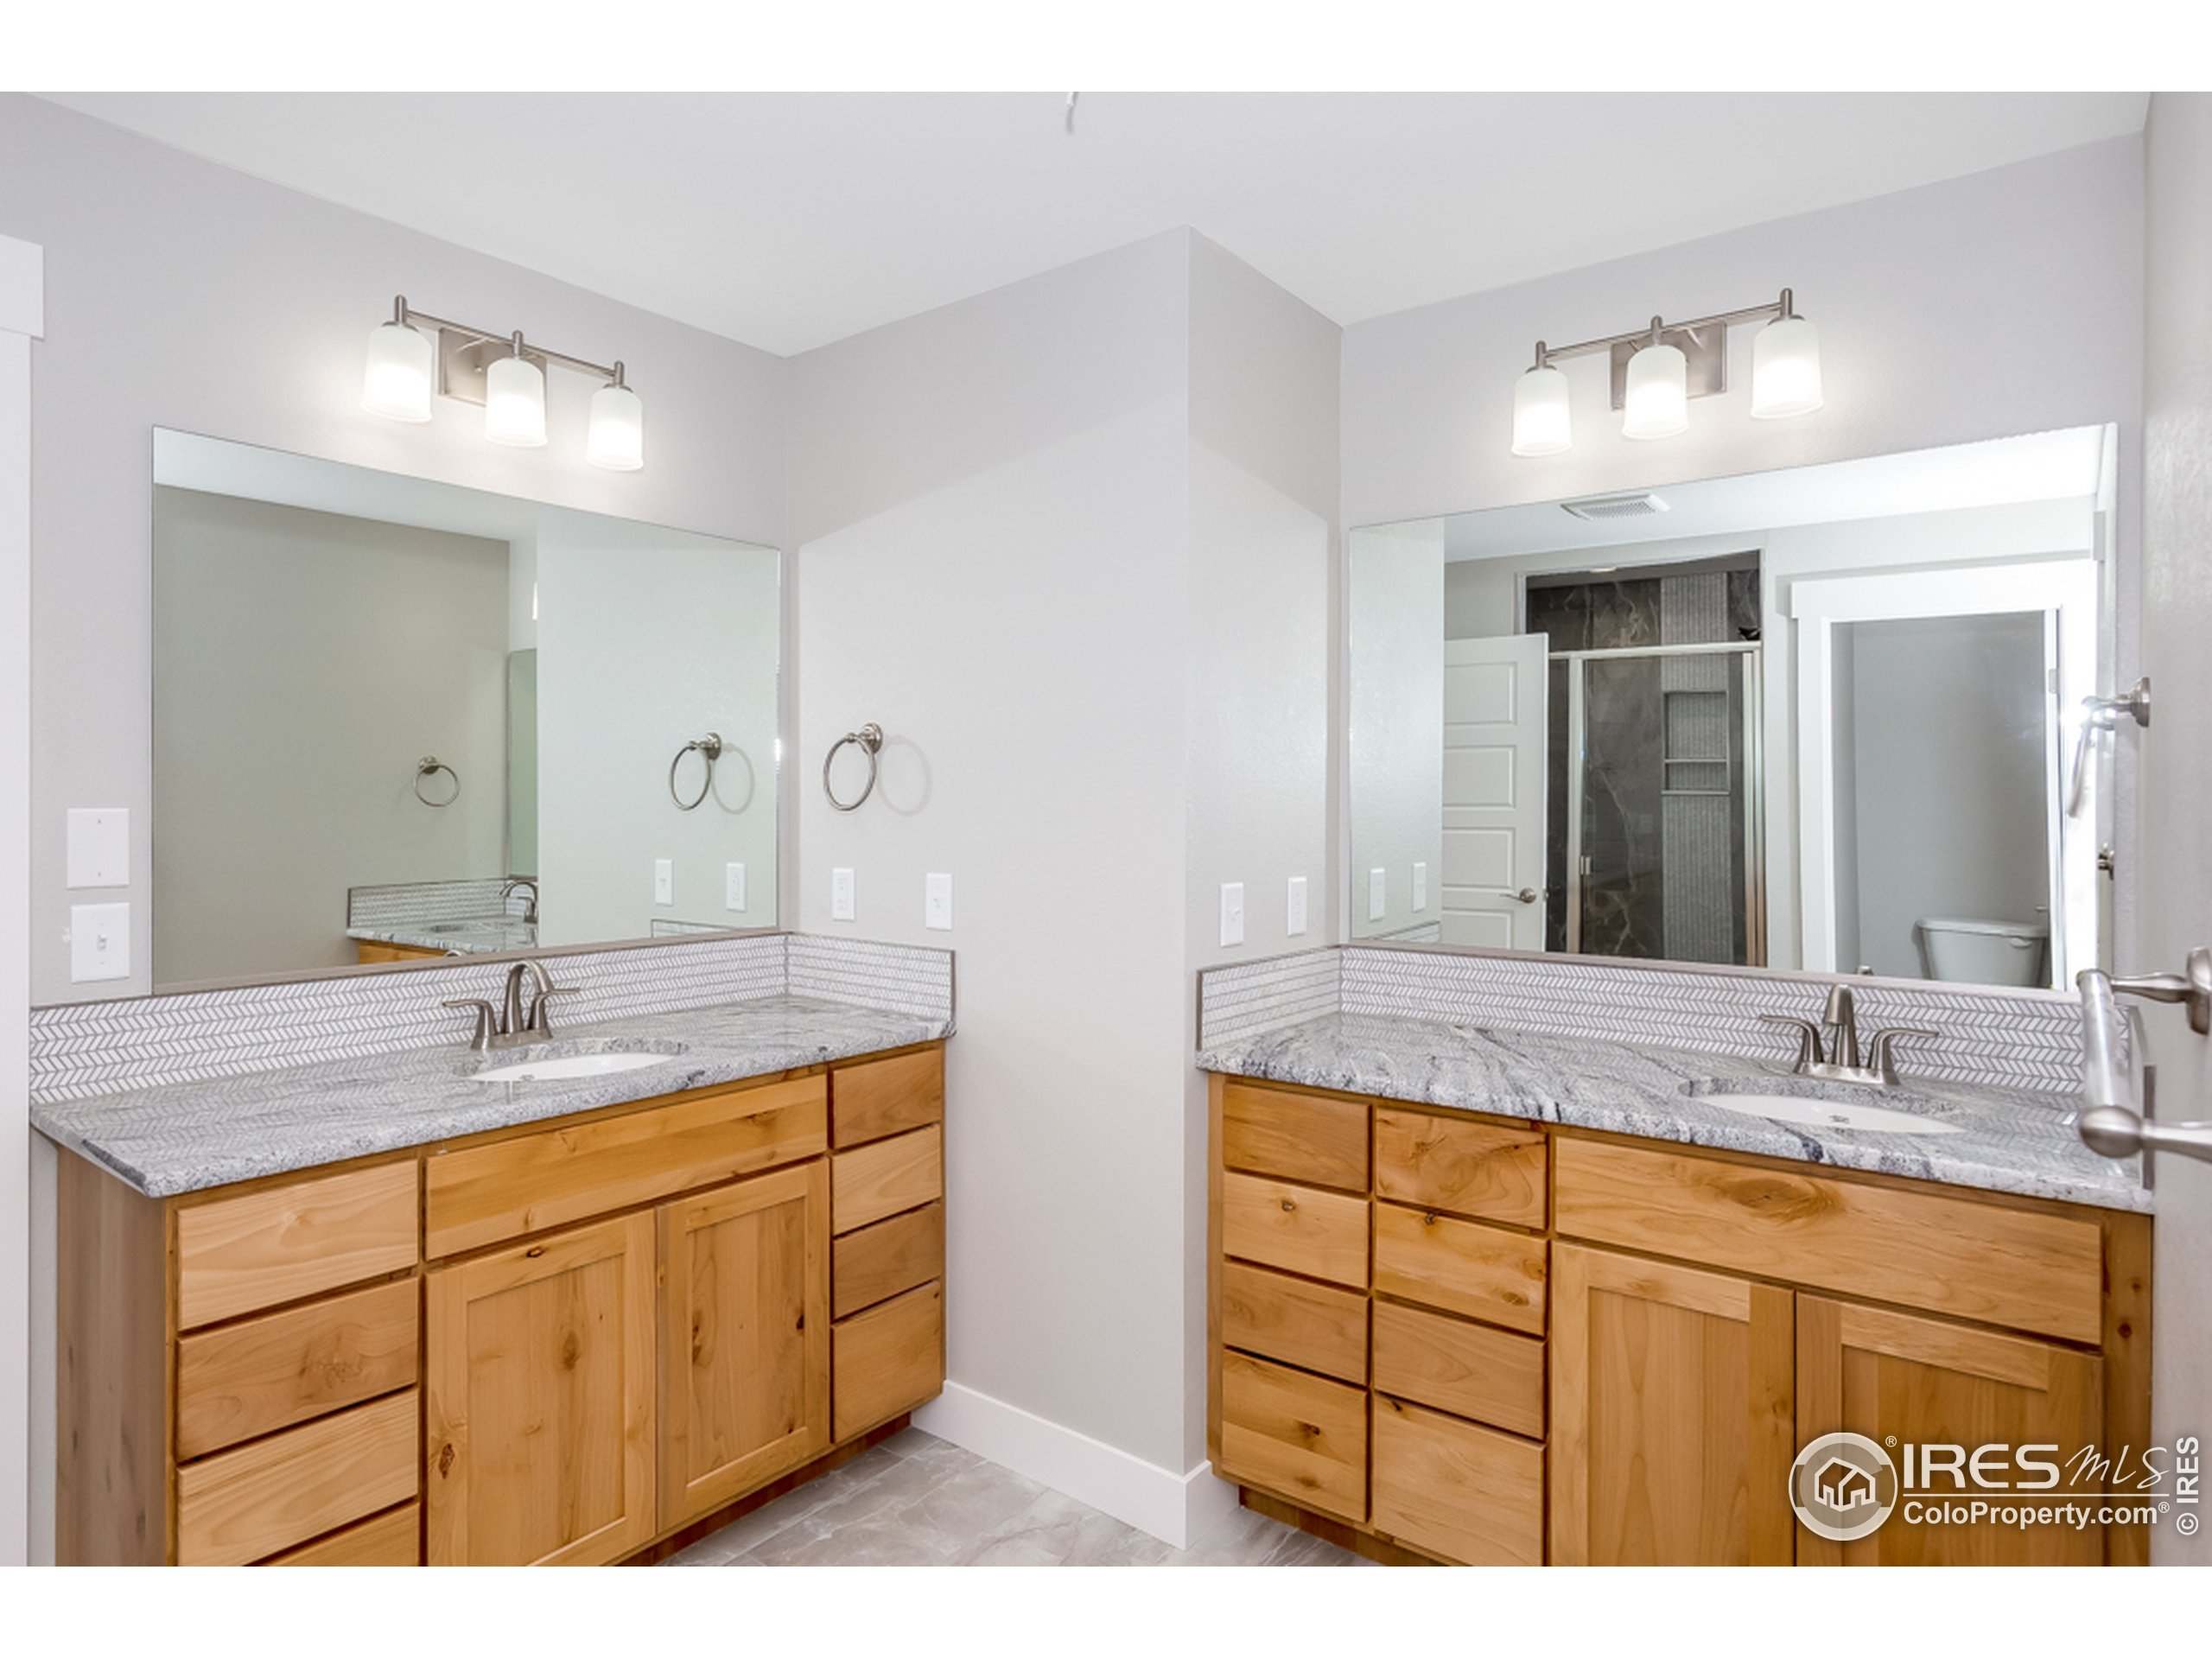 Double vanity in the primary bath can make mornings less hectic